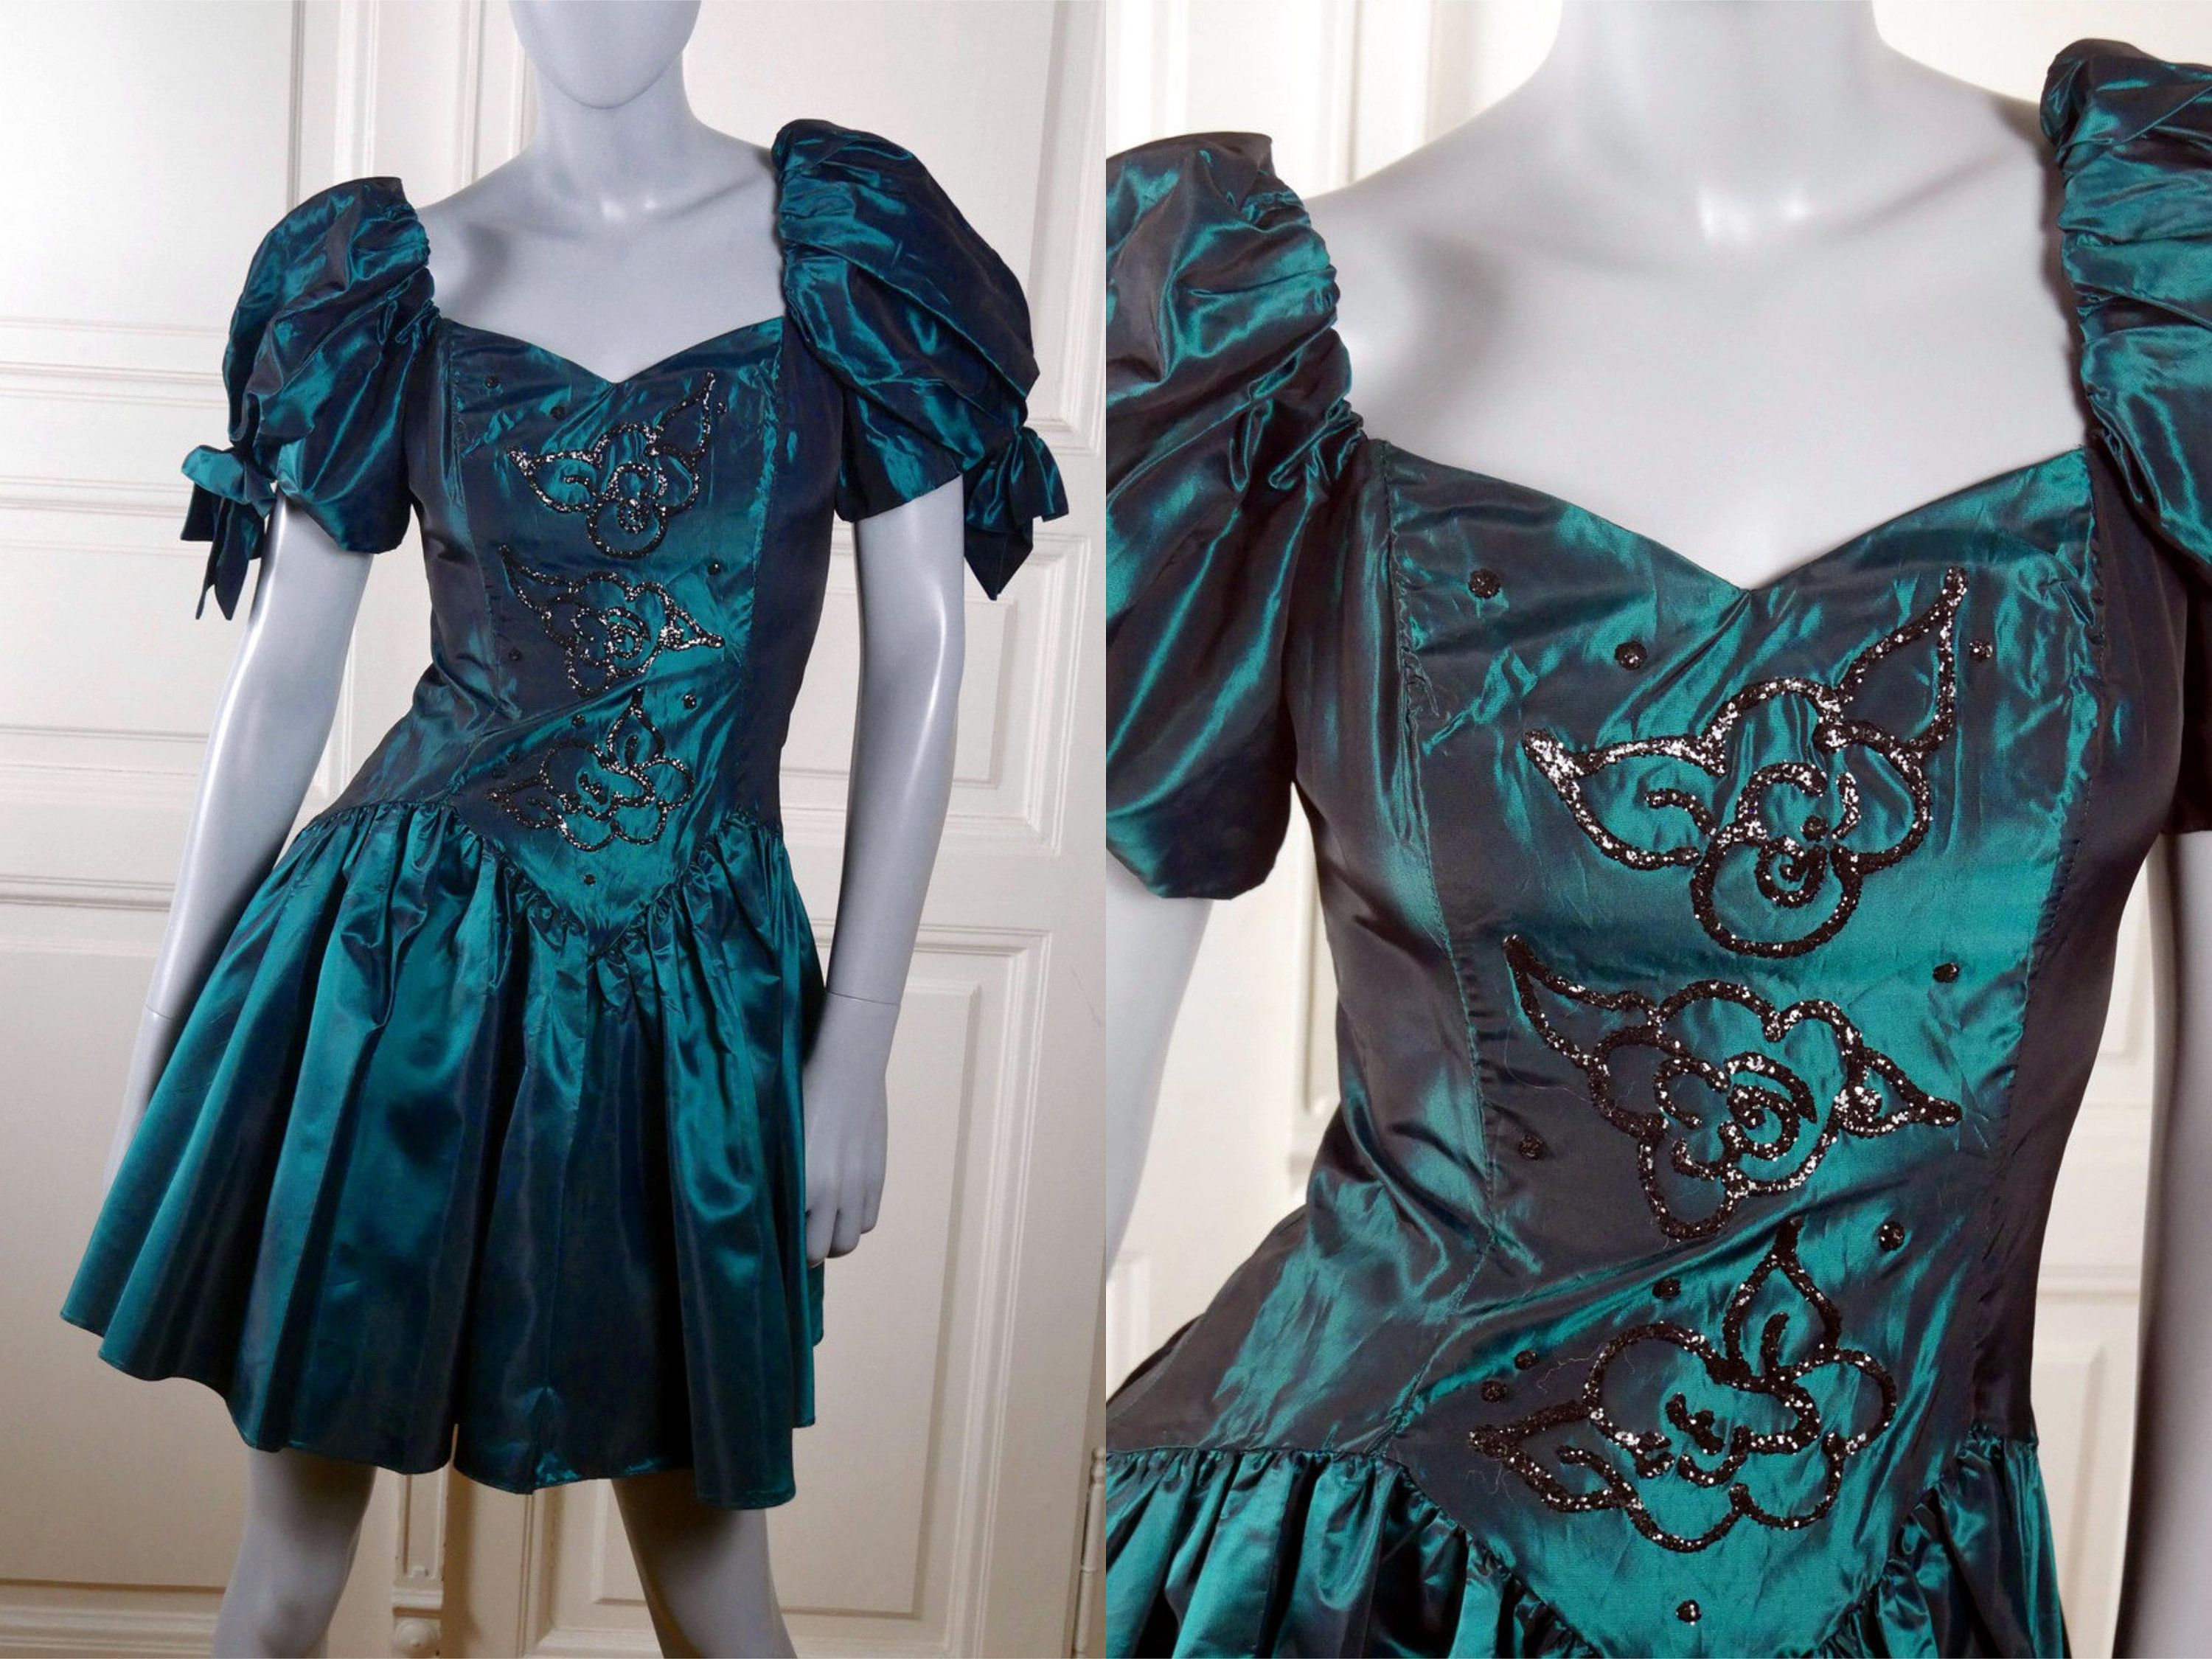 Vintage prom dress american vintage peacock blue evening dress